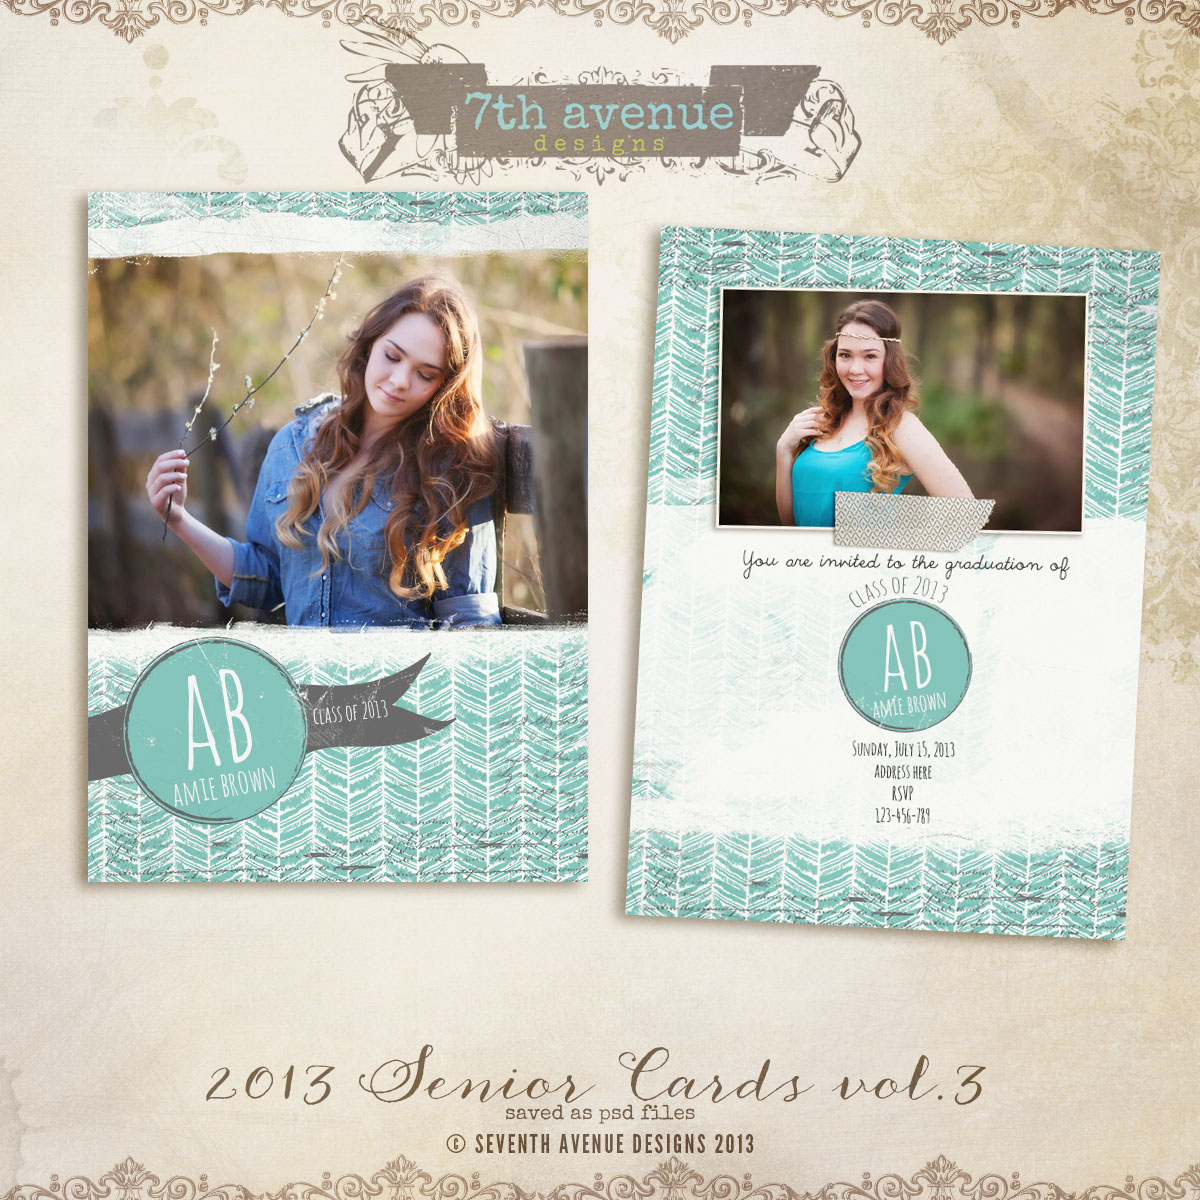 2013 Senior Card Templates no.3